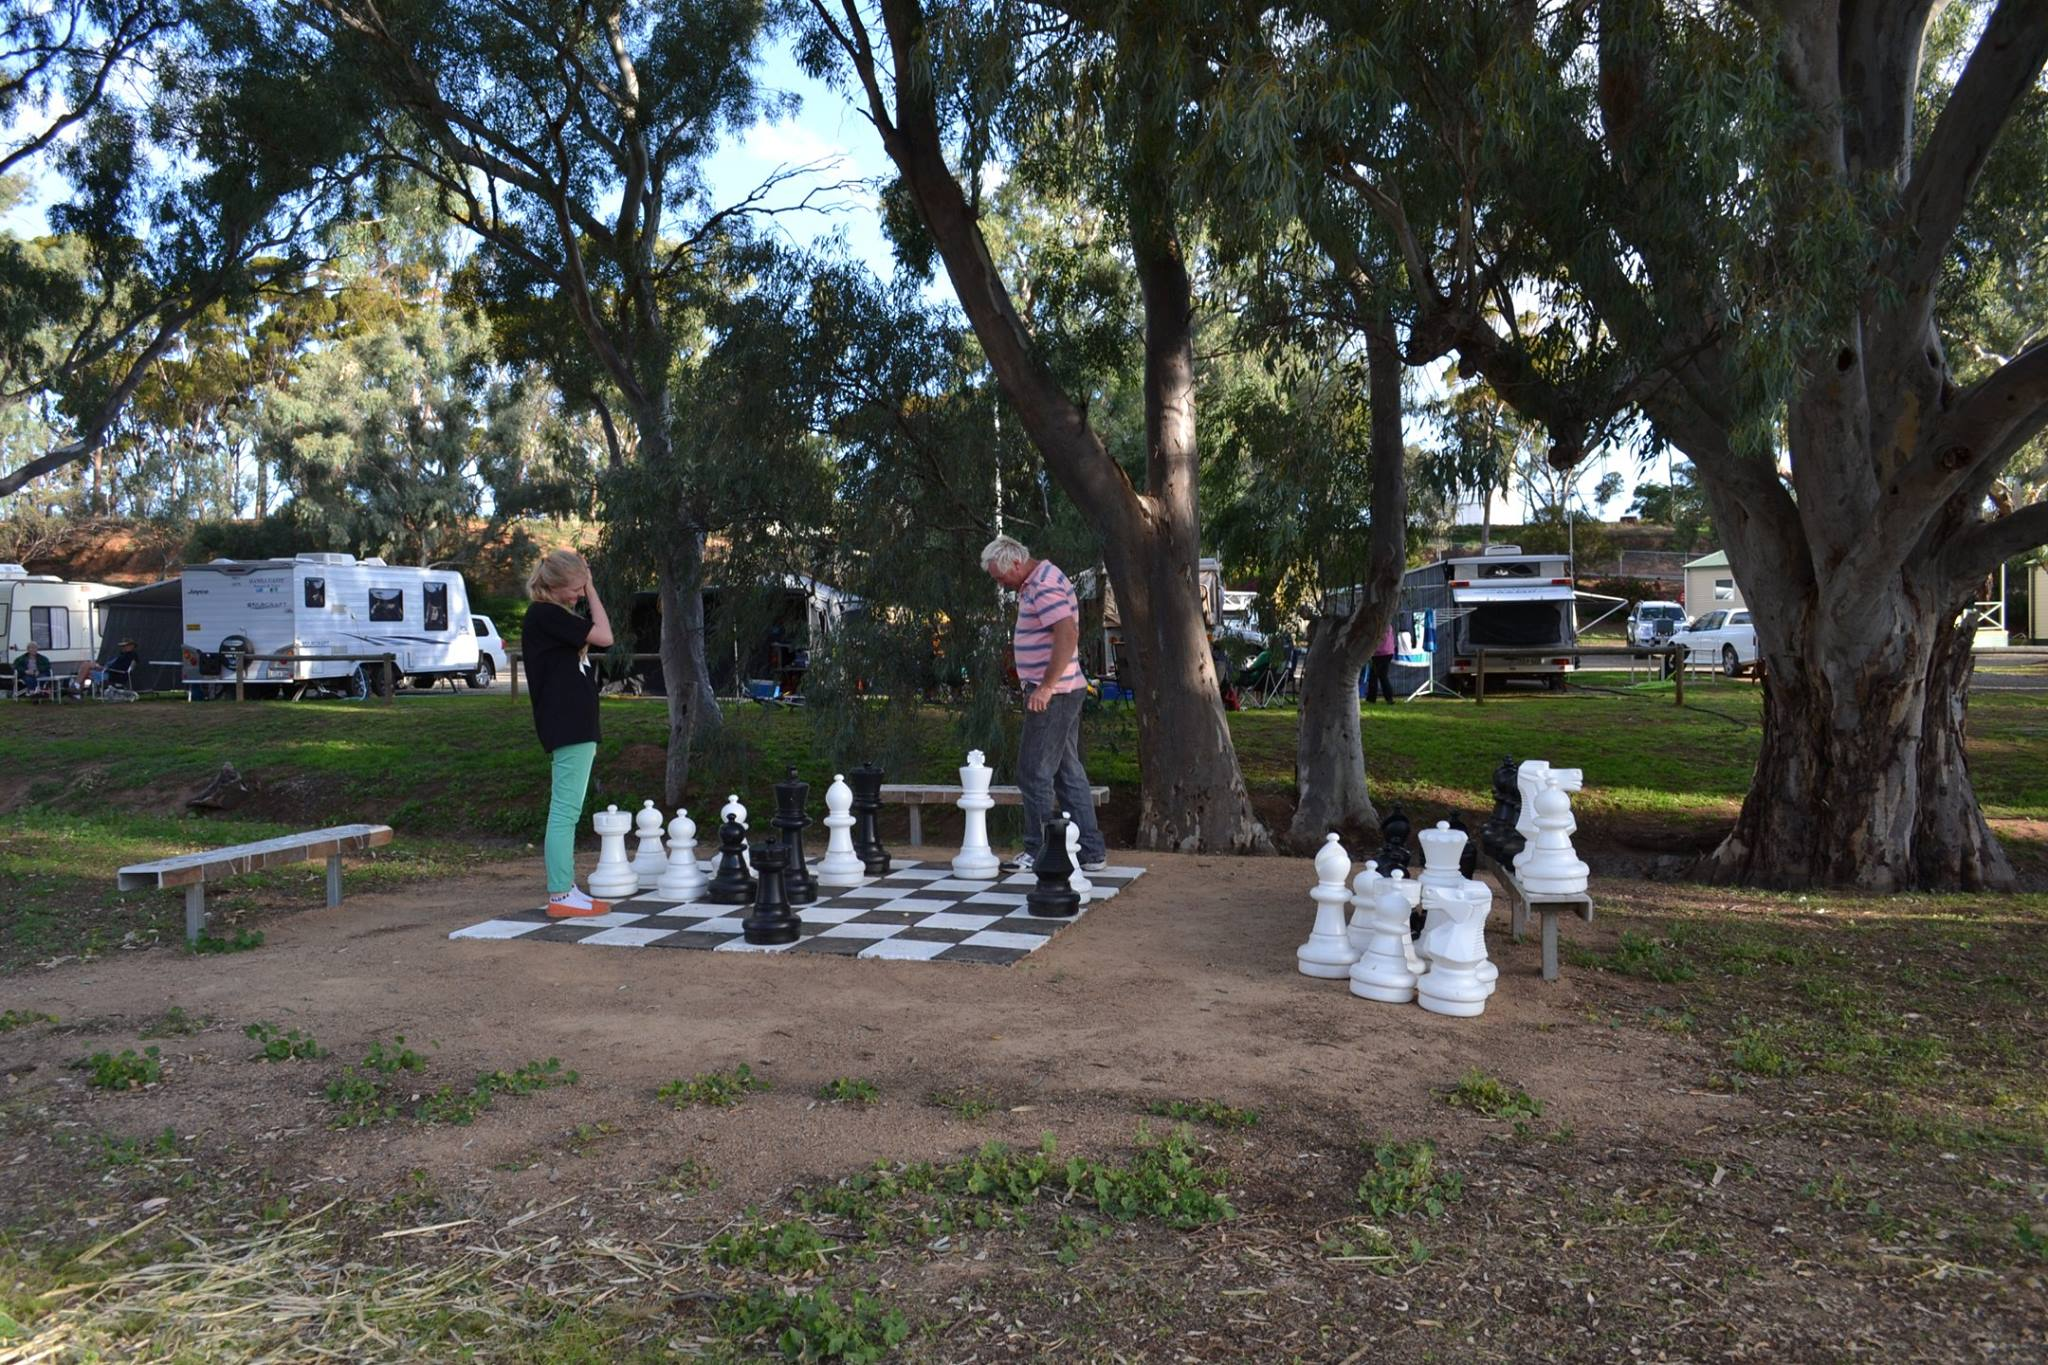 People playing a giant game of chess